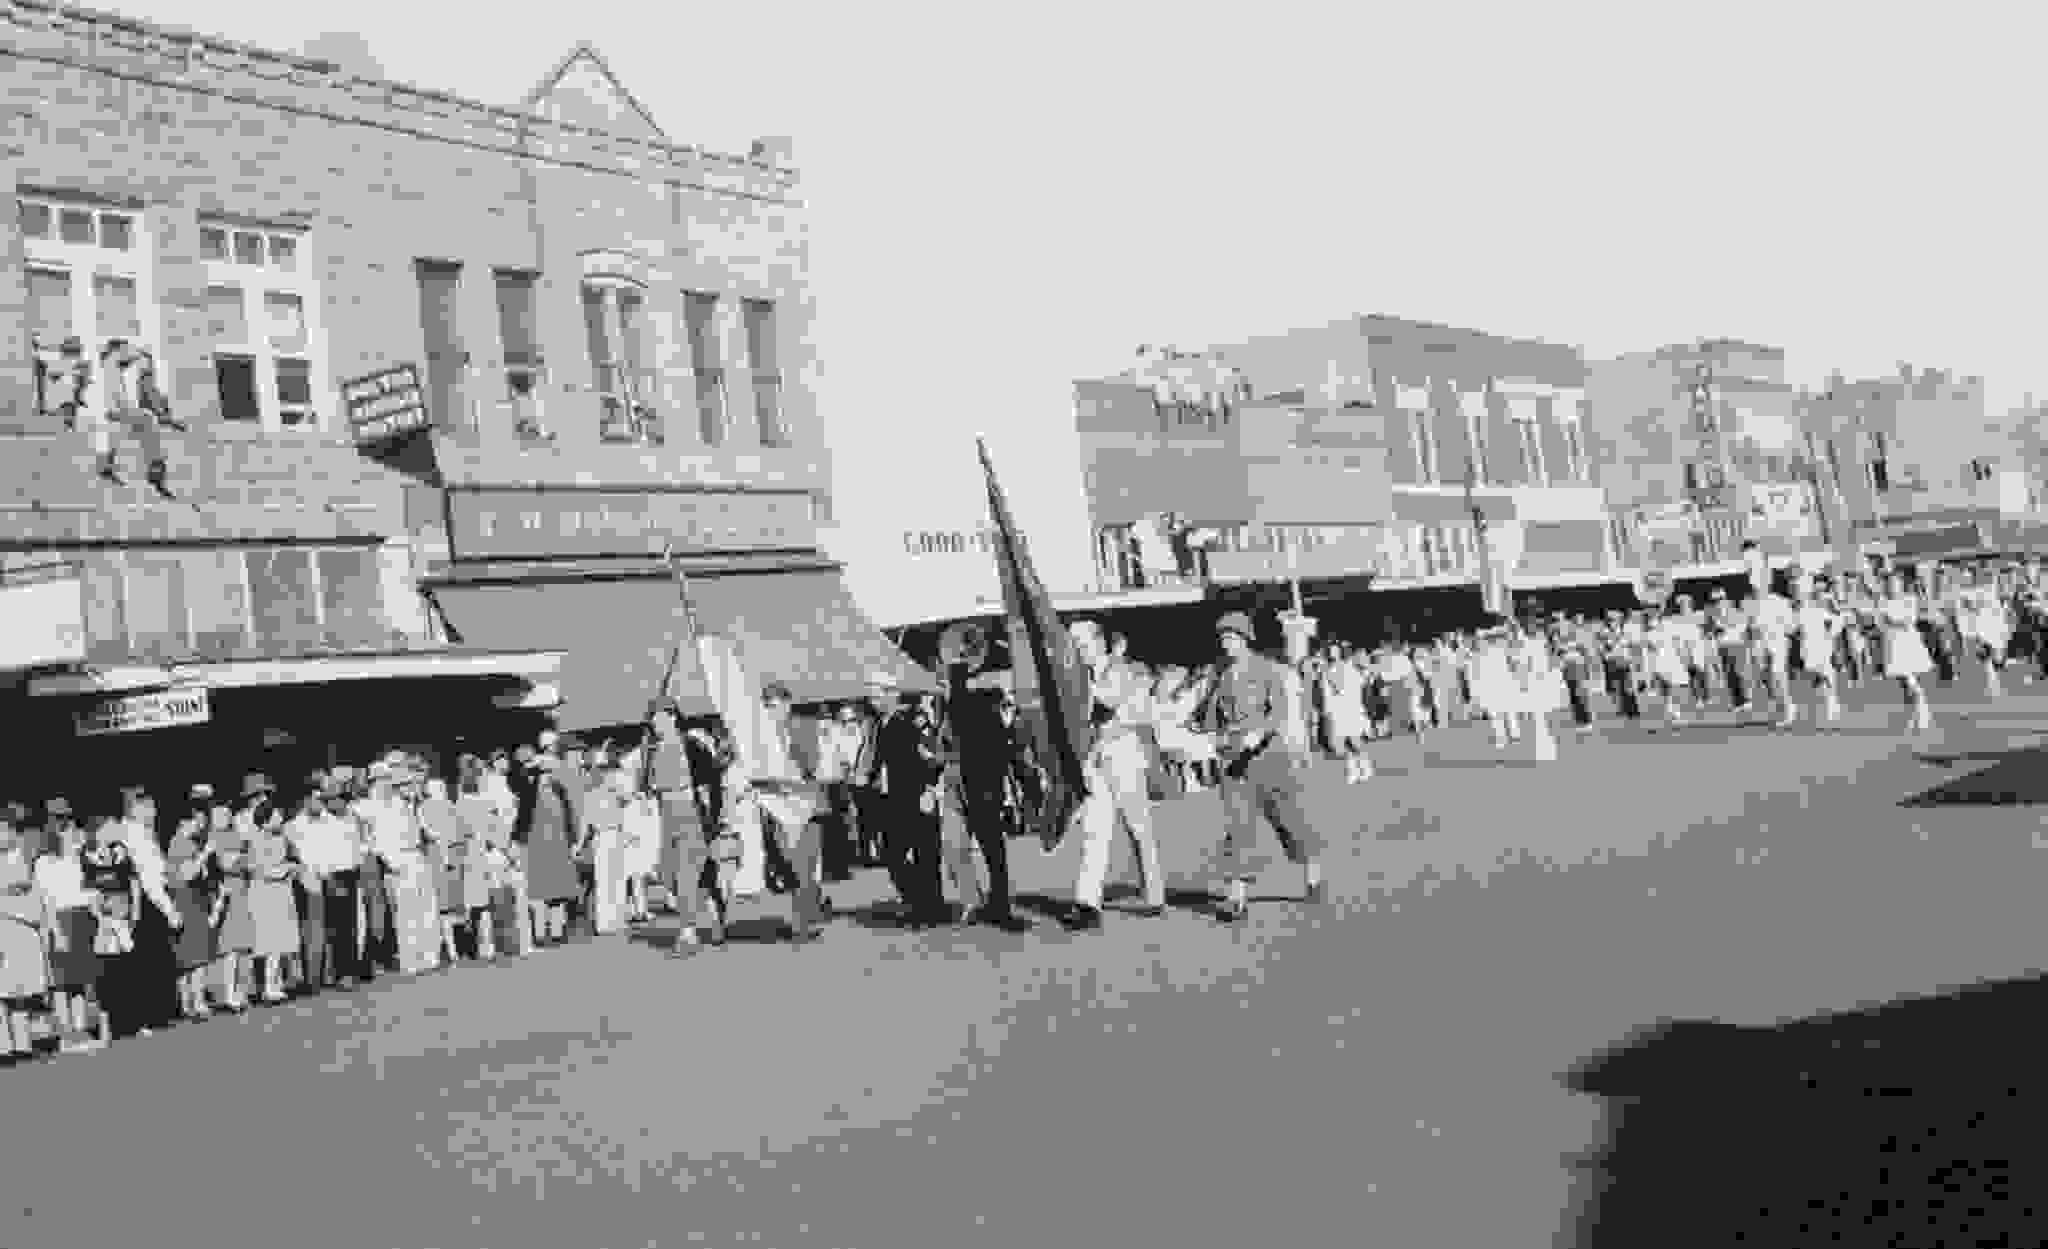 Historic photo of Main Street Duncan, Oklahoma